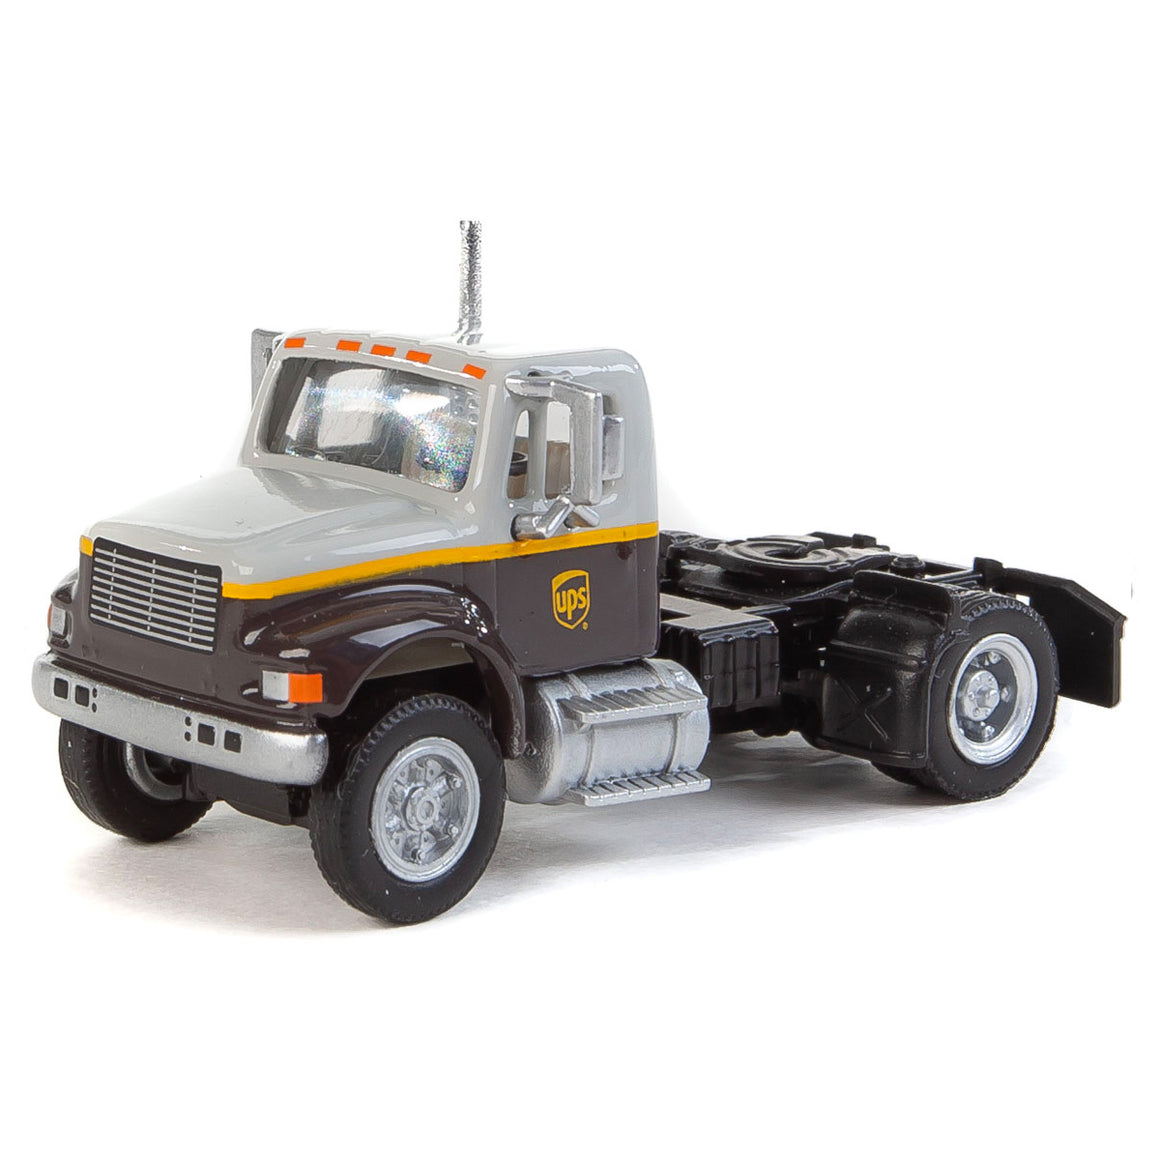 HO Scale: International 4900 Single Axle Semi Tractor - UPS 'Gray'